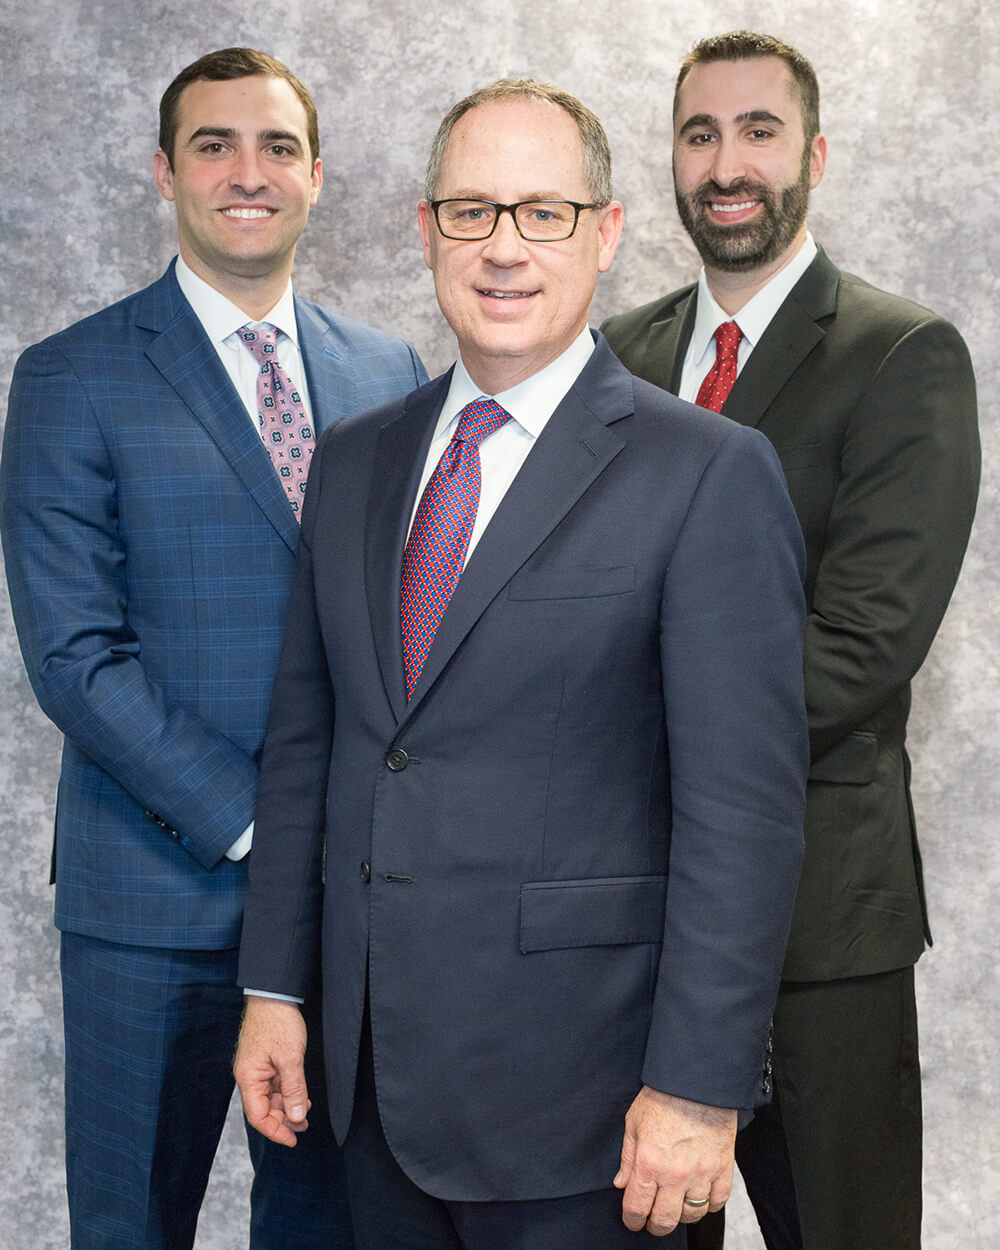 ornerstone Wealth Management Advisor photo